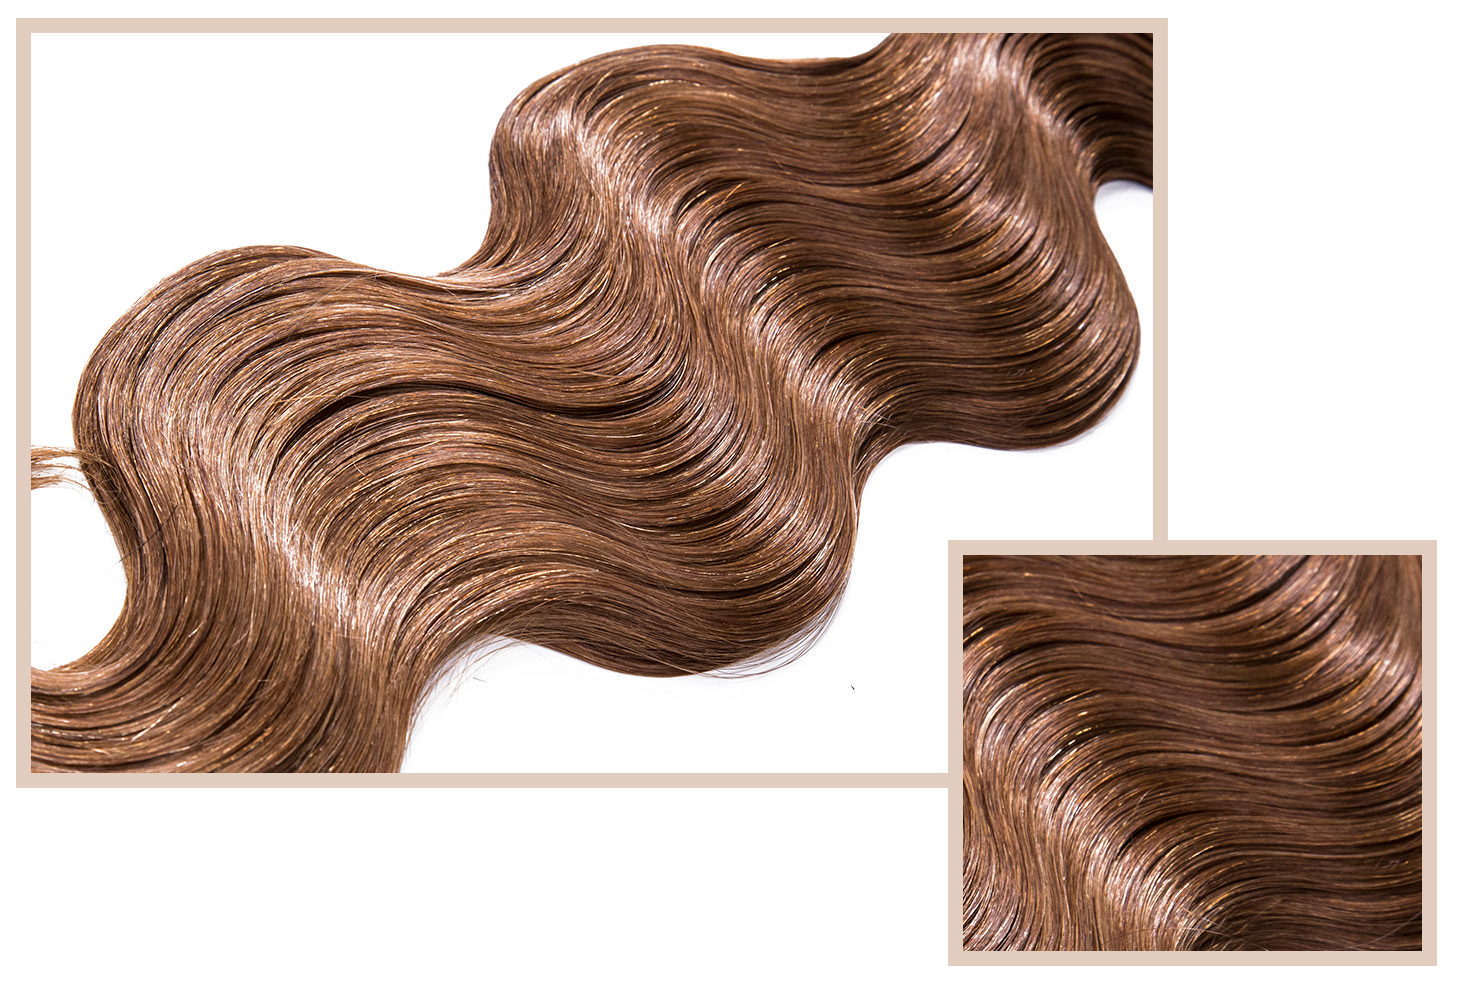 EUROPEAN BODY - Available in Classic CollectionA soft and silky, yet slightly coarse texture with the perfect amount of volume. Wear as-is or heat style into beautiful bouncy curls or straighten for a silky look. The waves will straighten out in time leaving a unique soft touch that's natural looking.